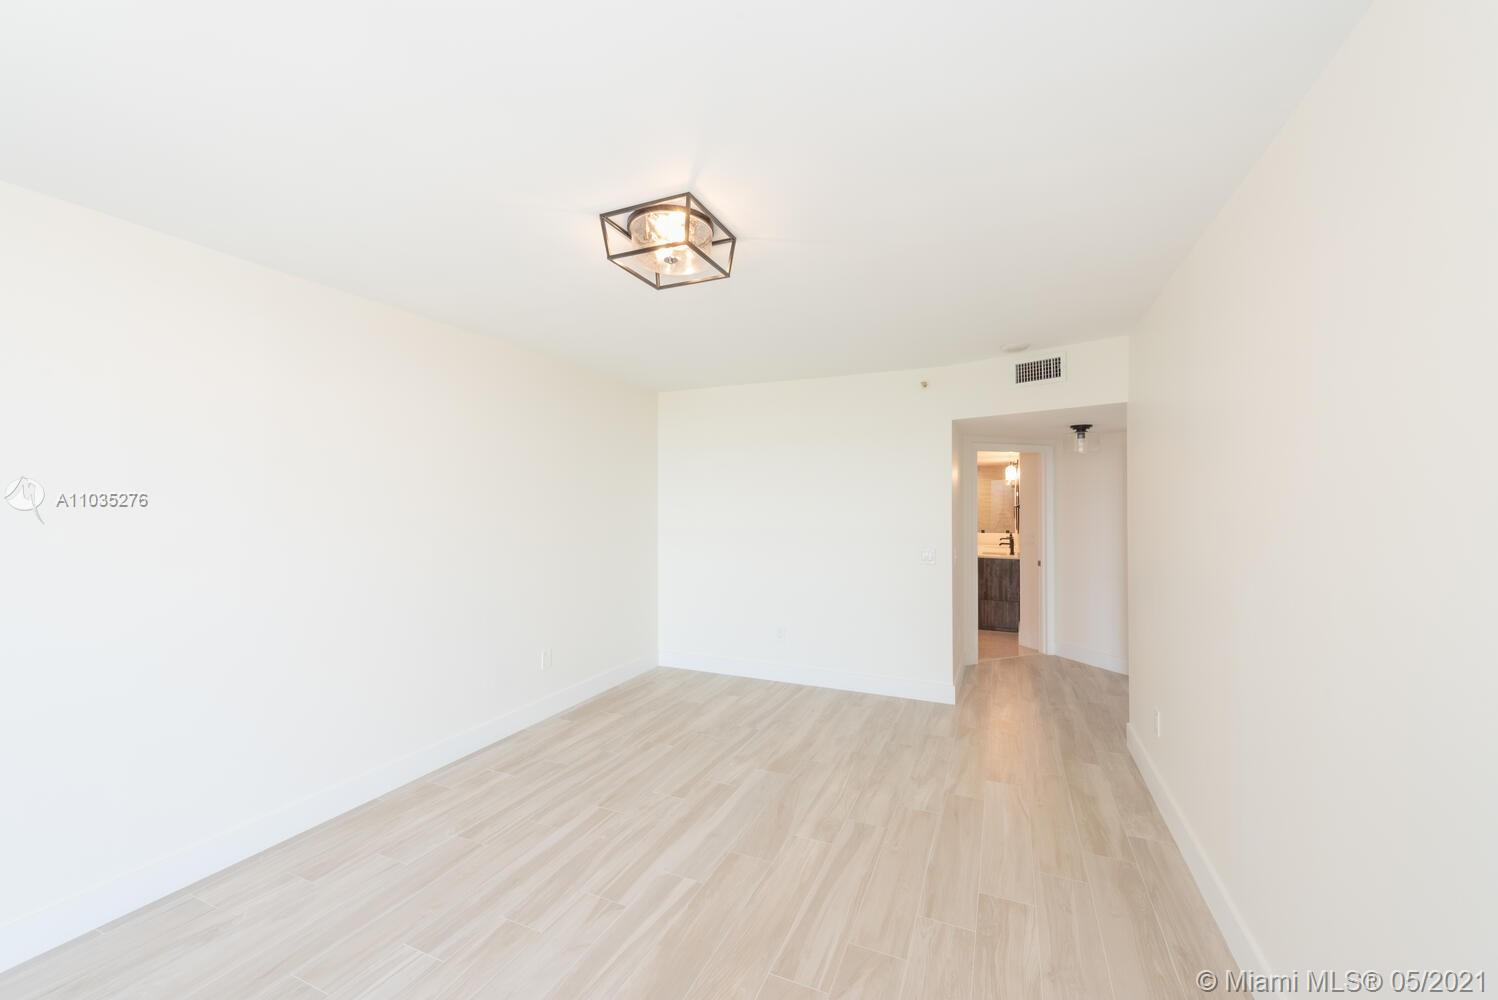 Photo of 8925 Collins Ave #4F, Surfside, Florida, 33154 - View to the south.